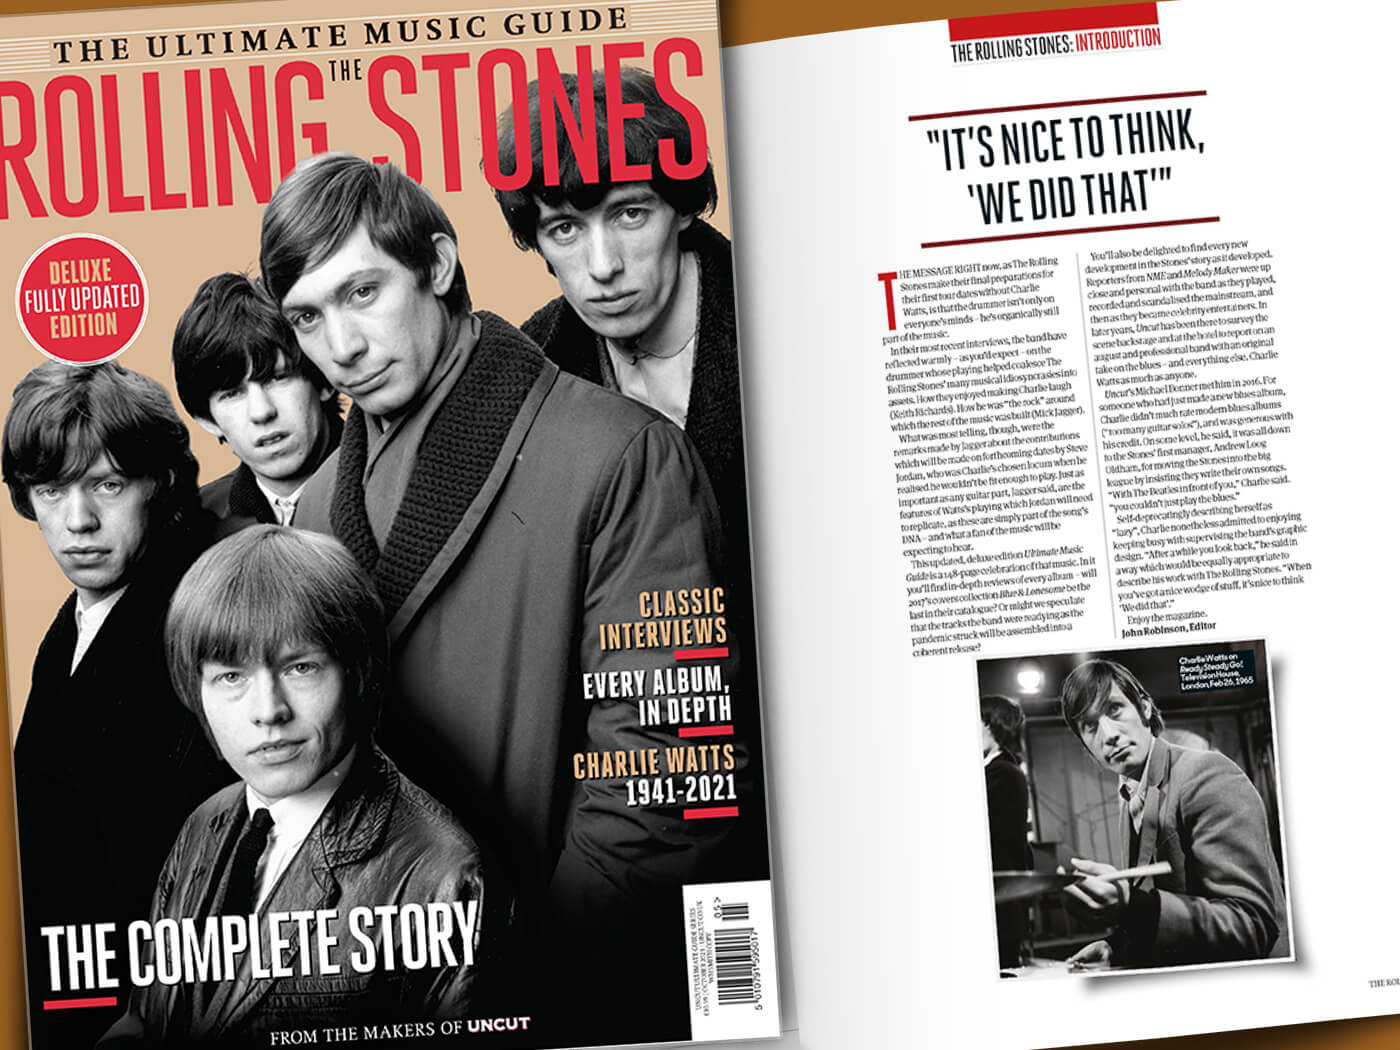 Introducing the Ultimate Music Guide to The Rolling Stones